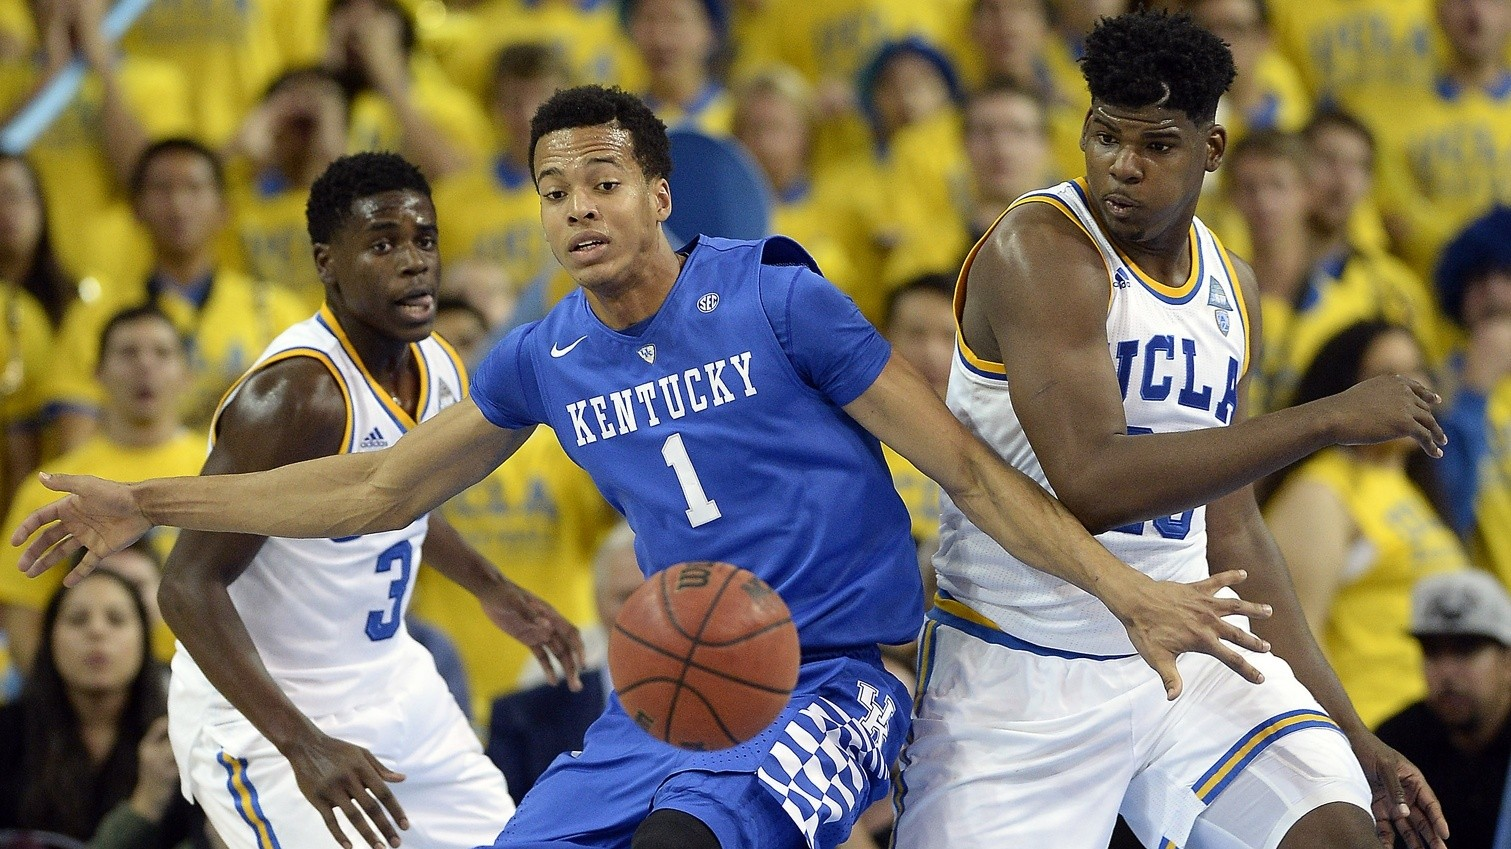 Kind Of Blue: Some Reasons Why Kentucky (Maybe) Might Not Be An Elite Team